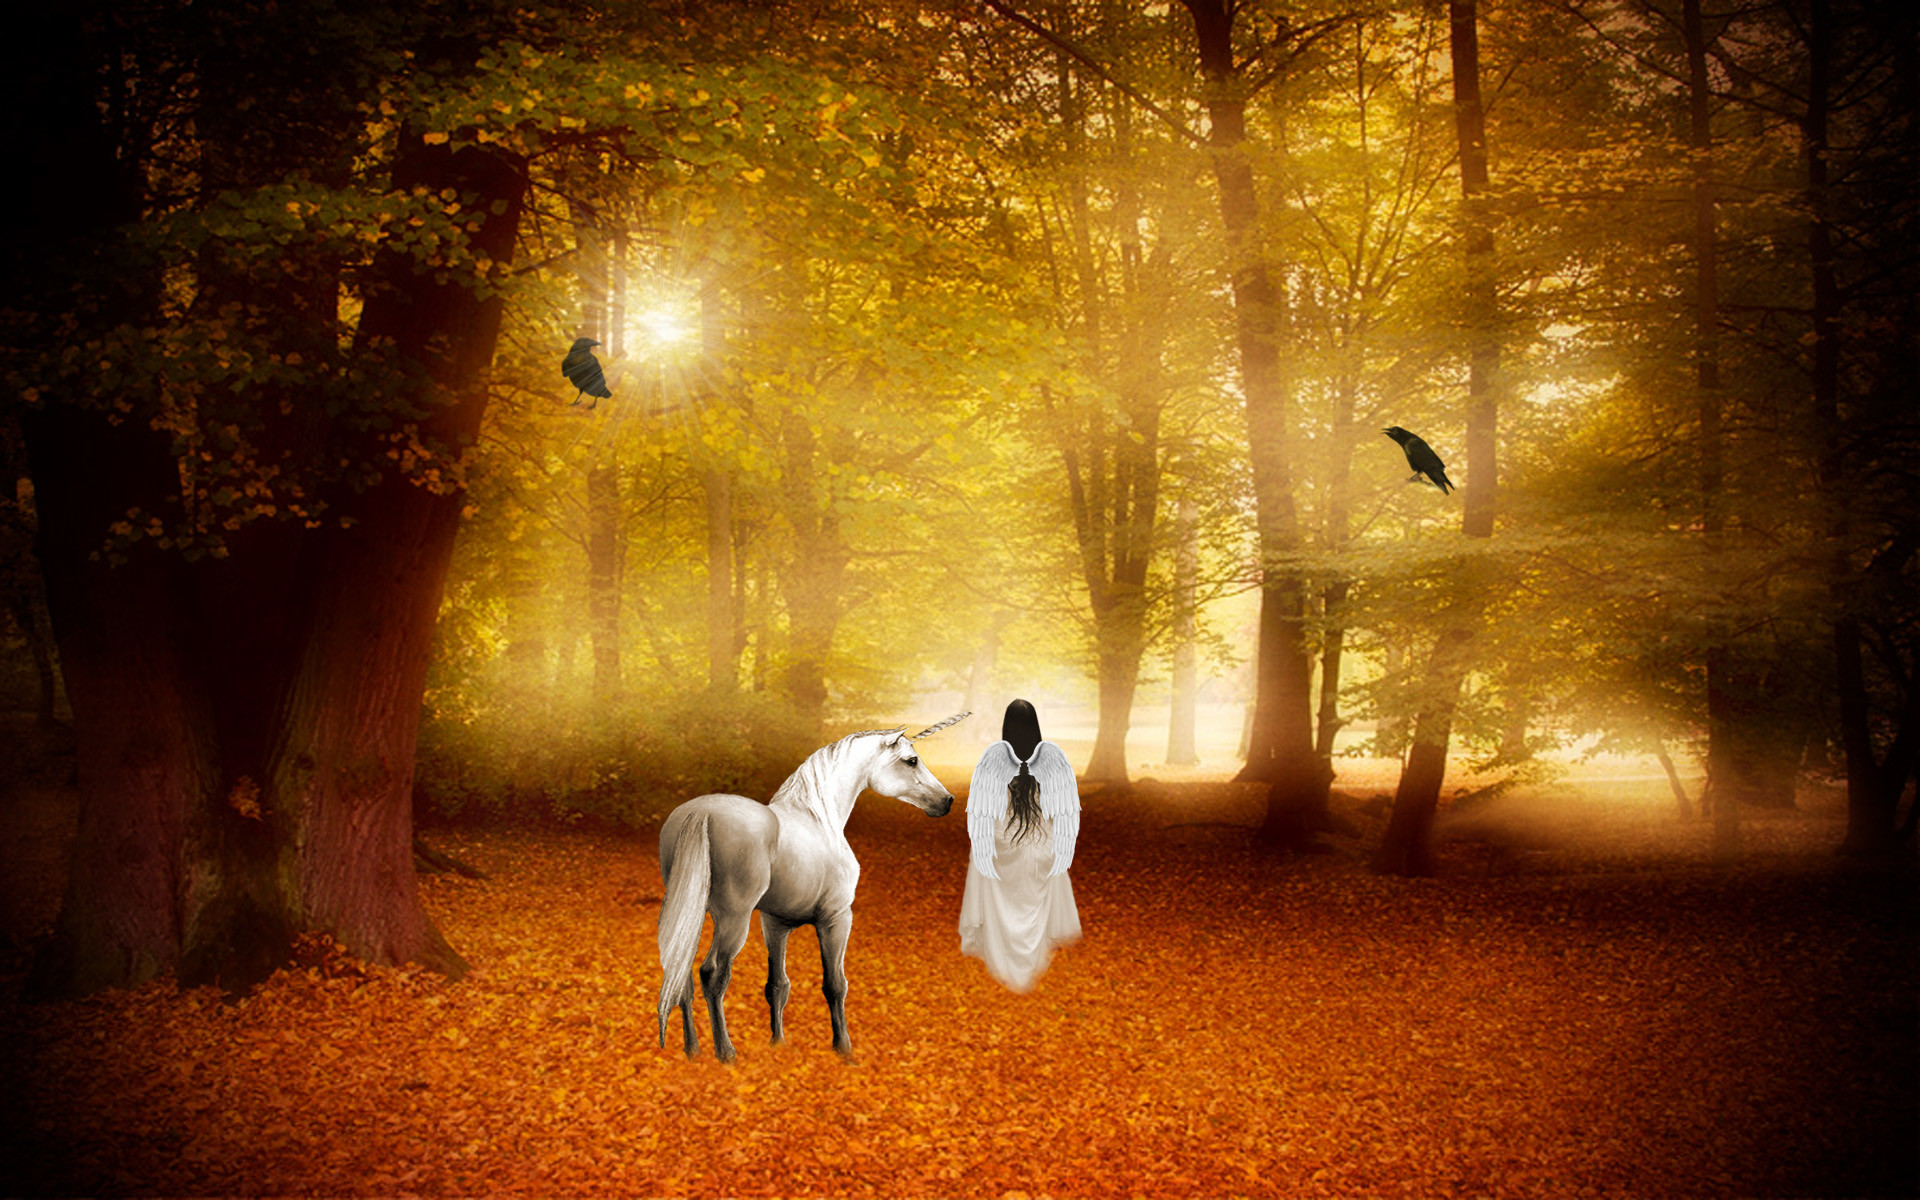 horse magical animal angel fairy autumn forest g wallpaper background .